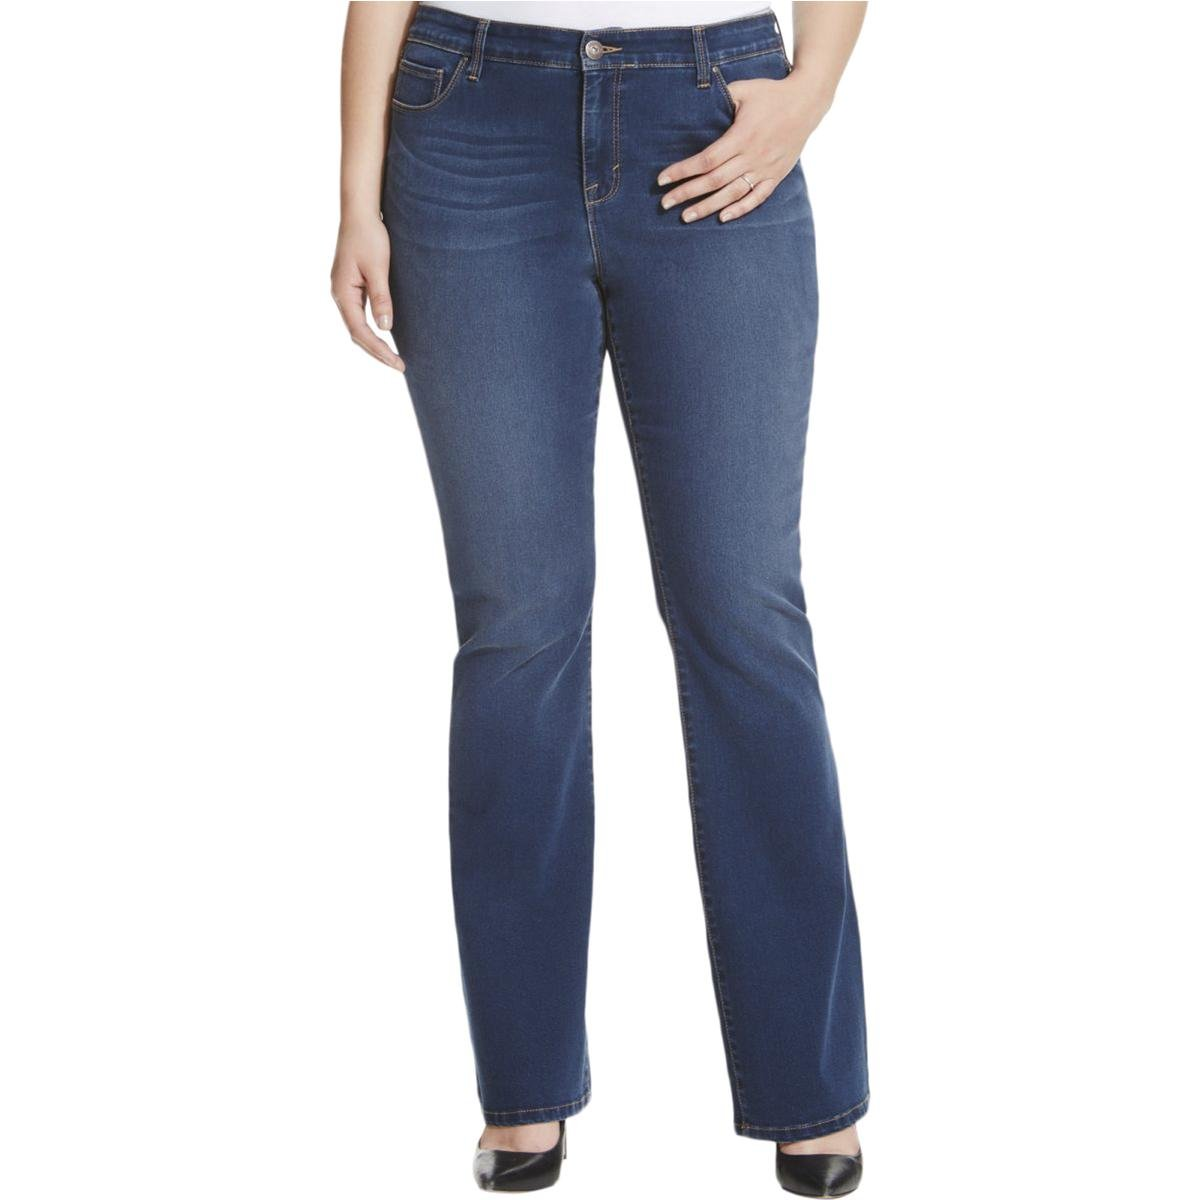 Style & Co. Womens Plus Curvy Fit Tummy Control Boot Cut Jeans Blue 22W